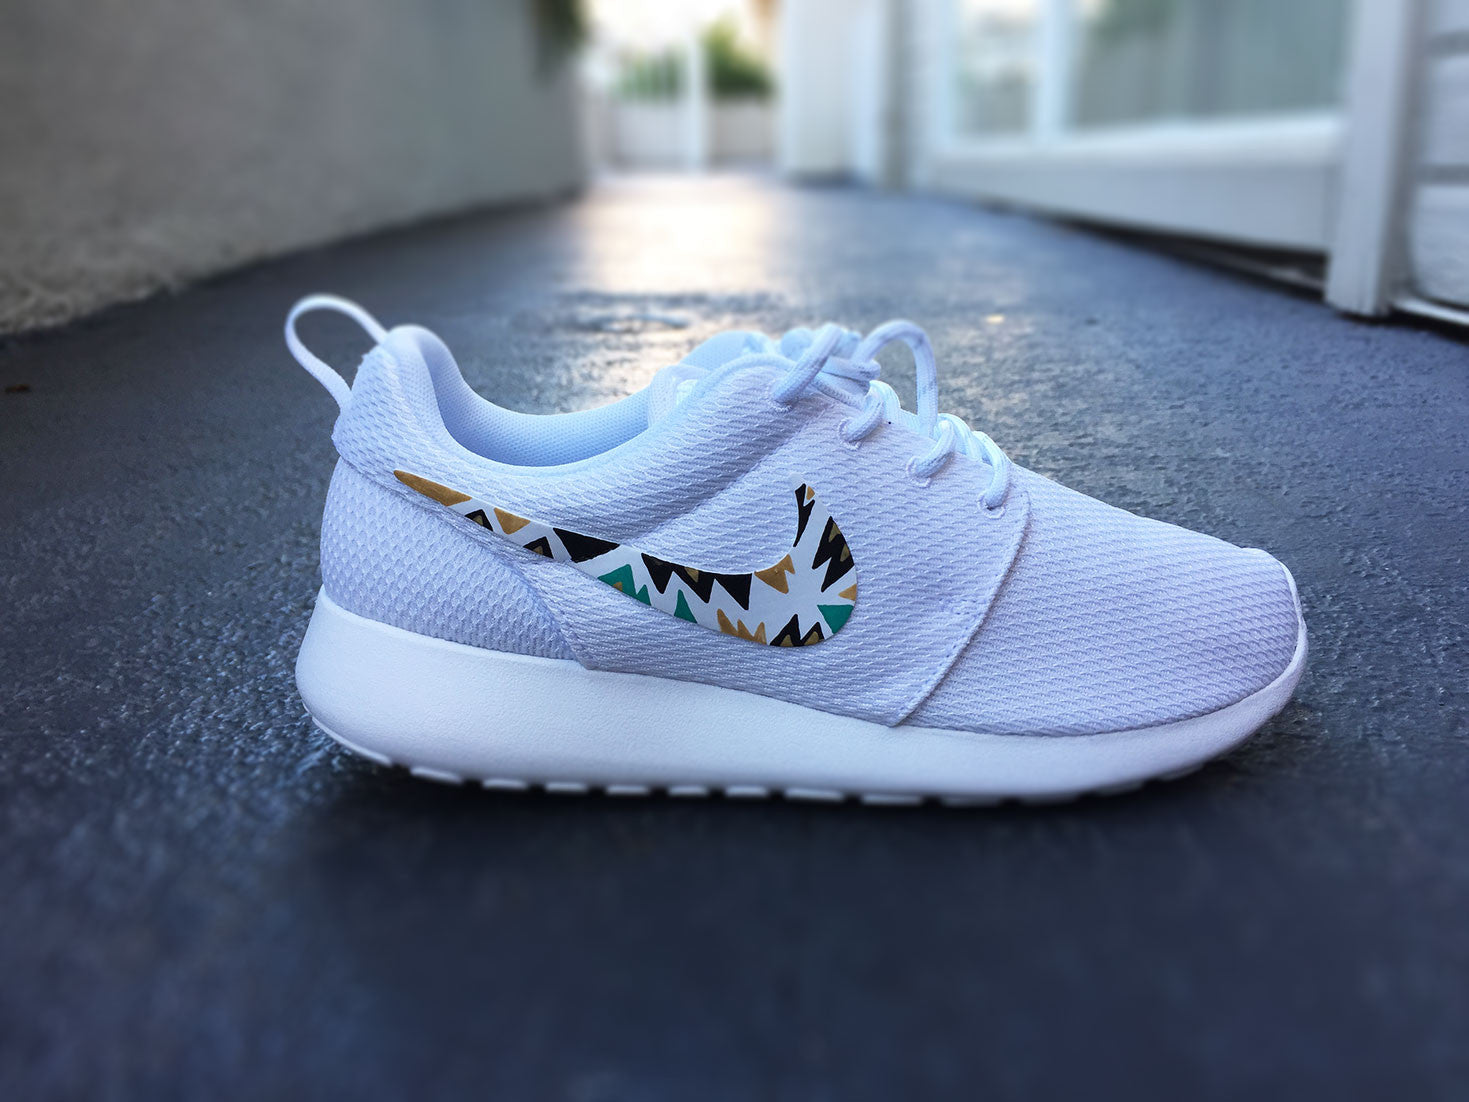 the latest af3bf 2142c ... cheap custom nike roshe run sneakers for women all white black and gold  silver tribal triangle